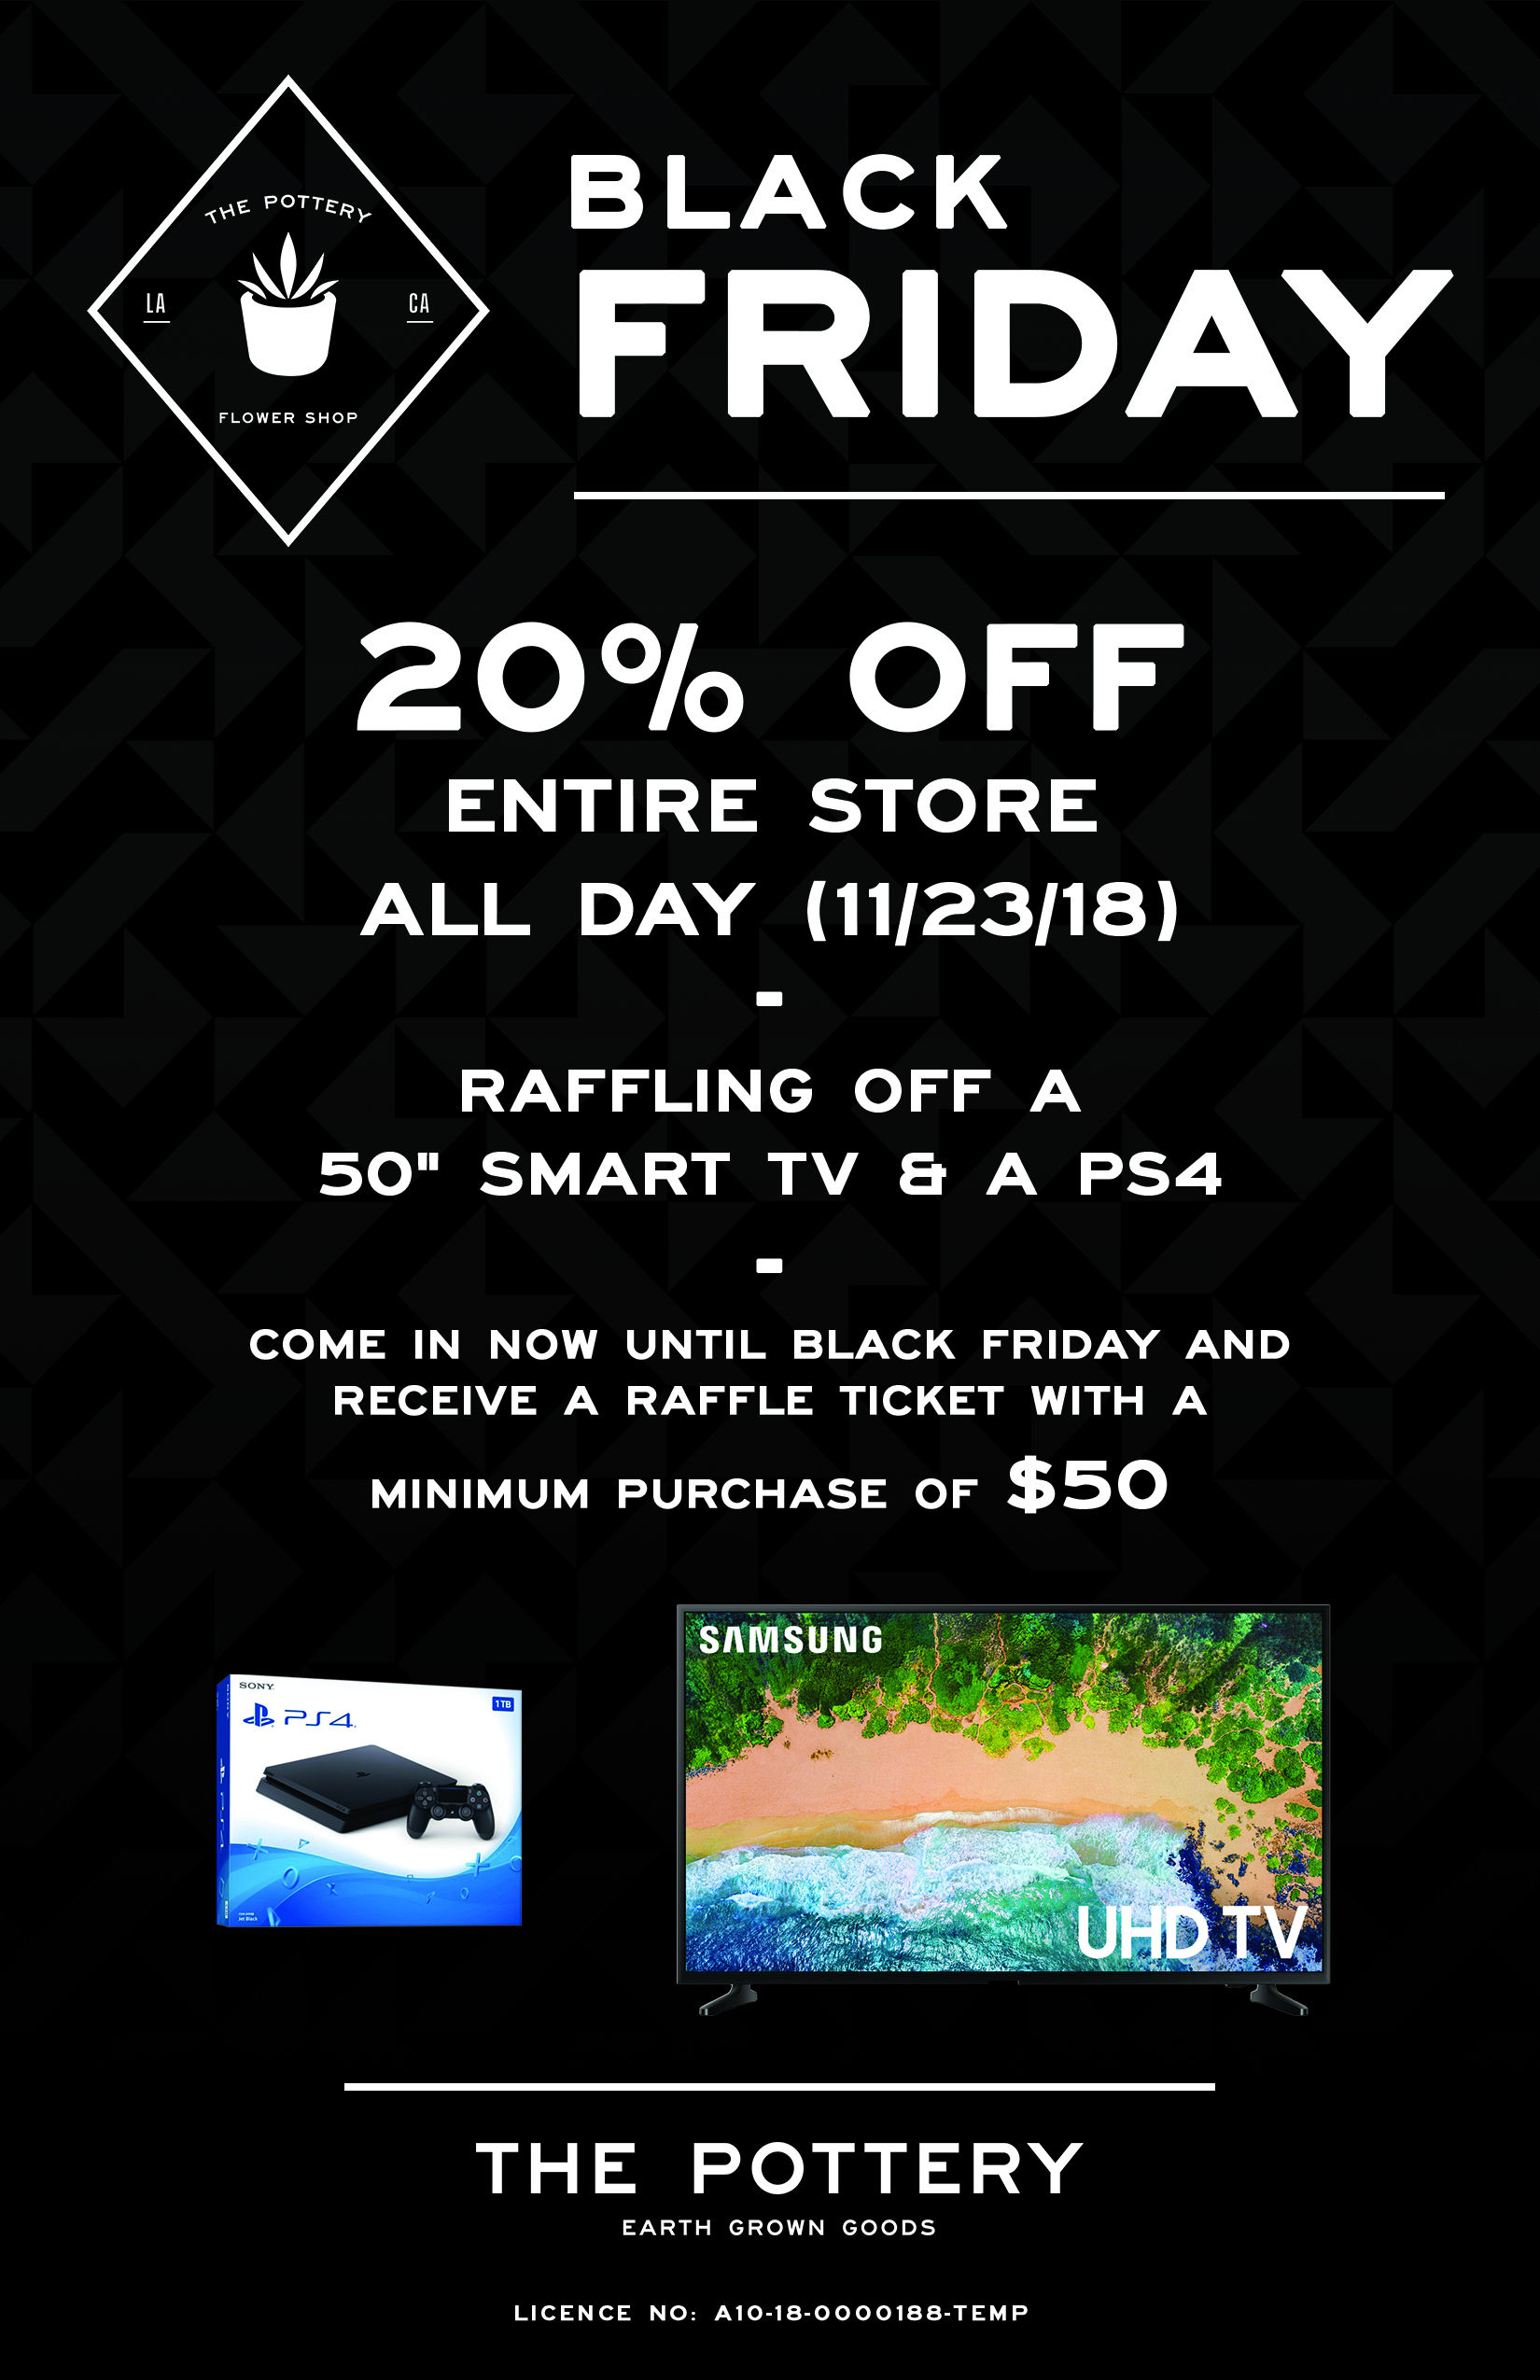 The Pottery Black Friday Flyer